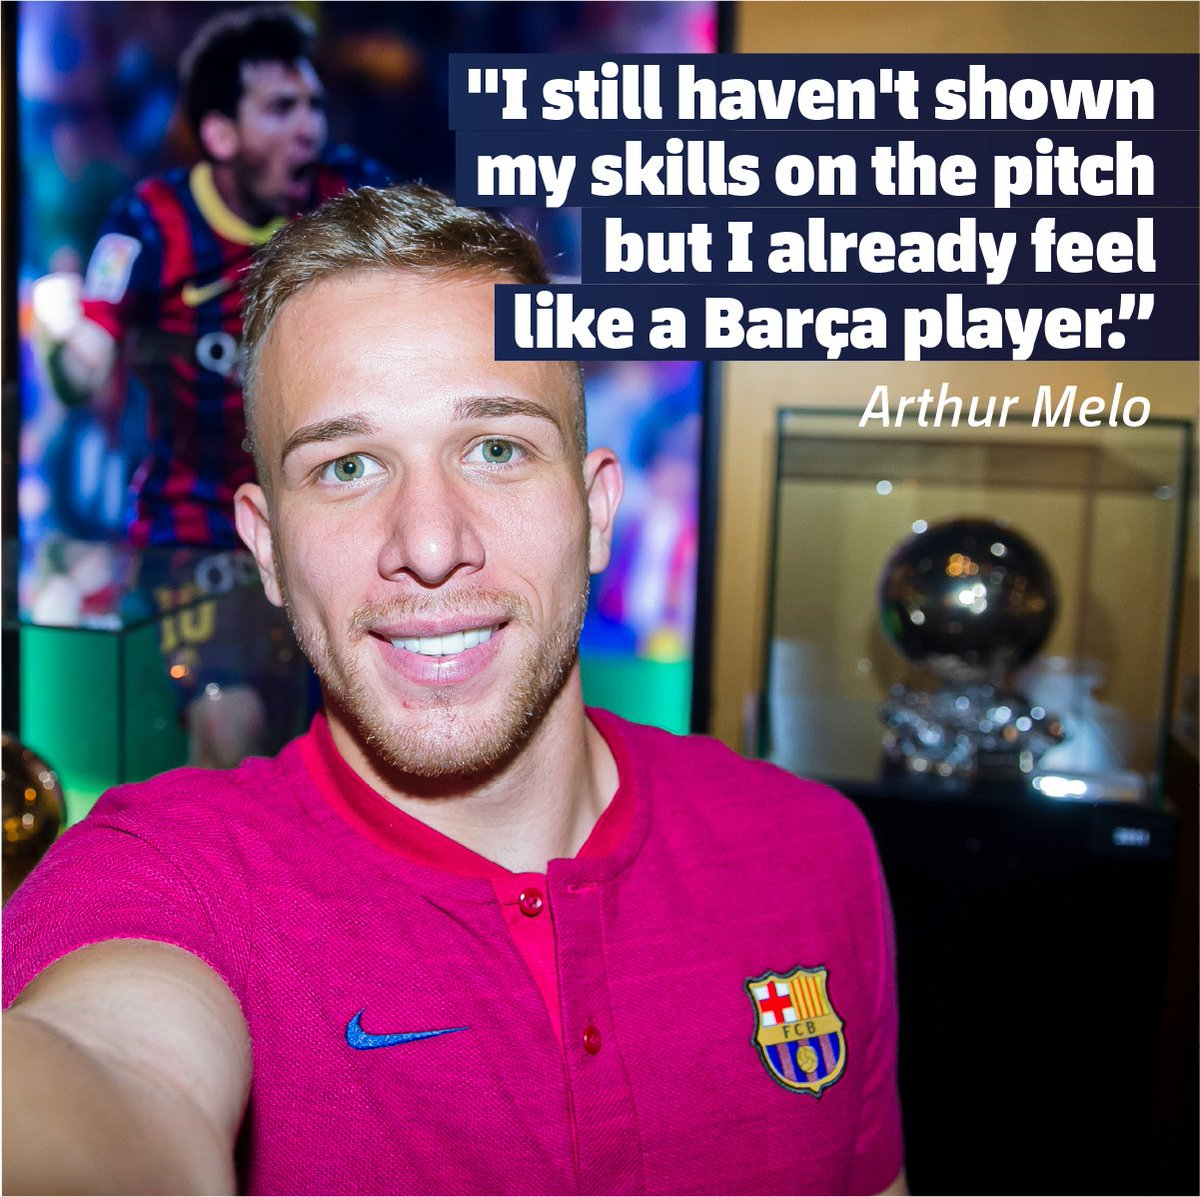 🤩 @arthurmeloreal has visited the Camp Nou Tour to feel like a Barça player. Do you want to feel it as well? ⚽Get your ticket here 👉ow.ly/yX1V30kTKcB 🔵🔴#EnjoyArthur